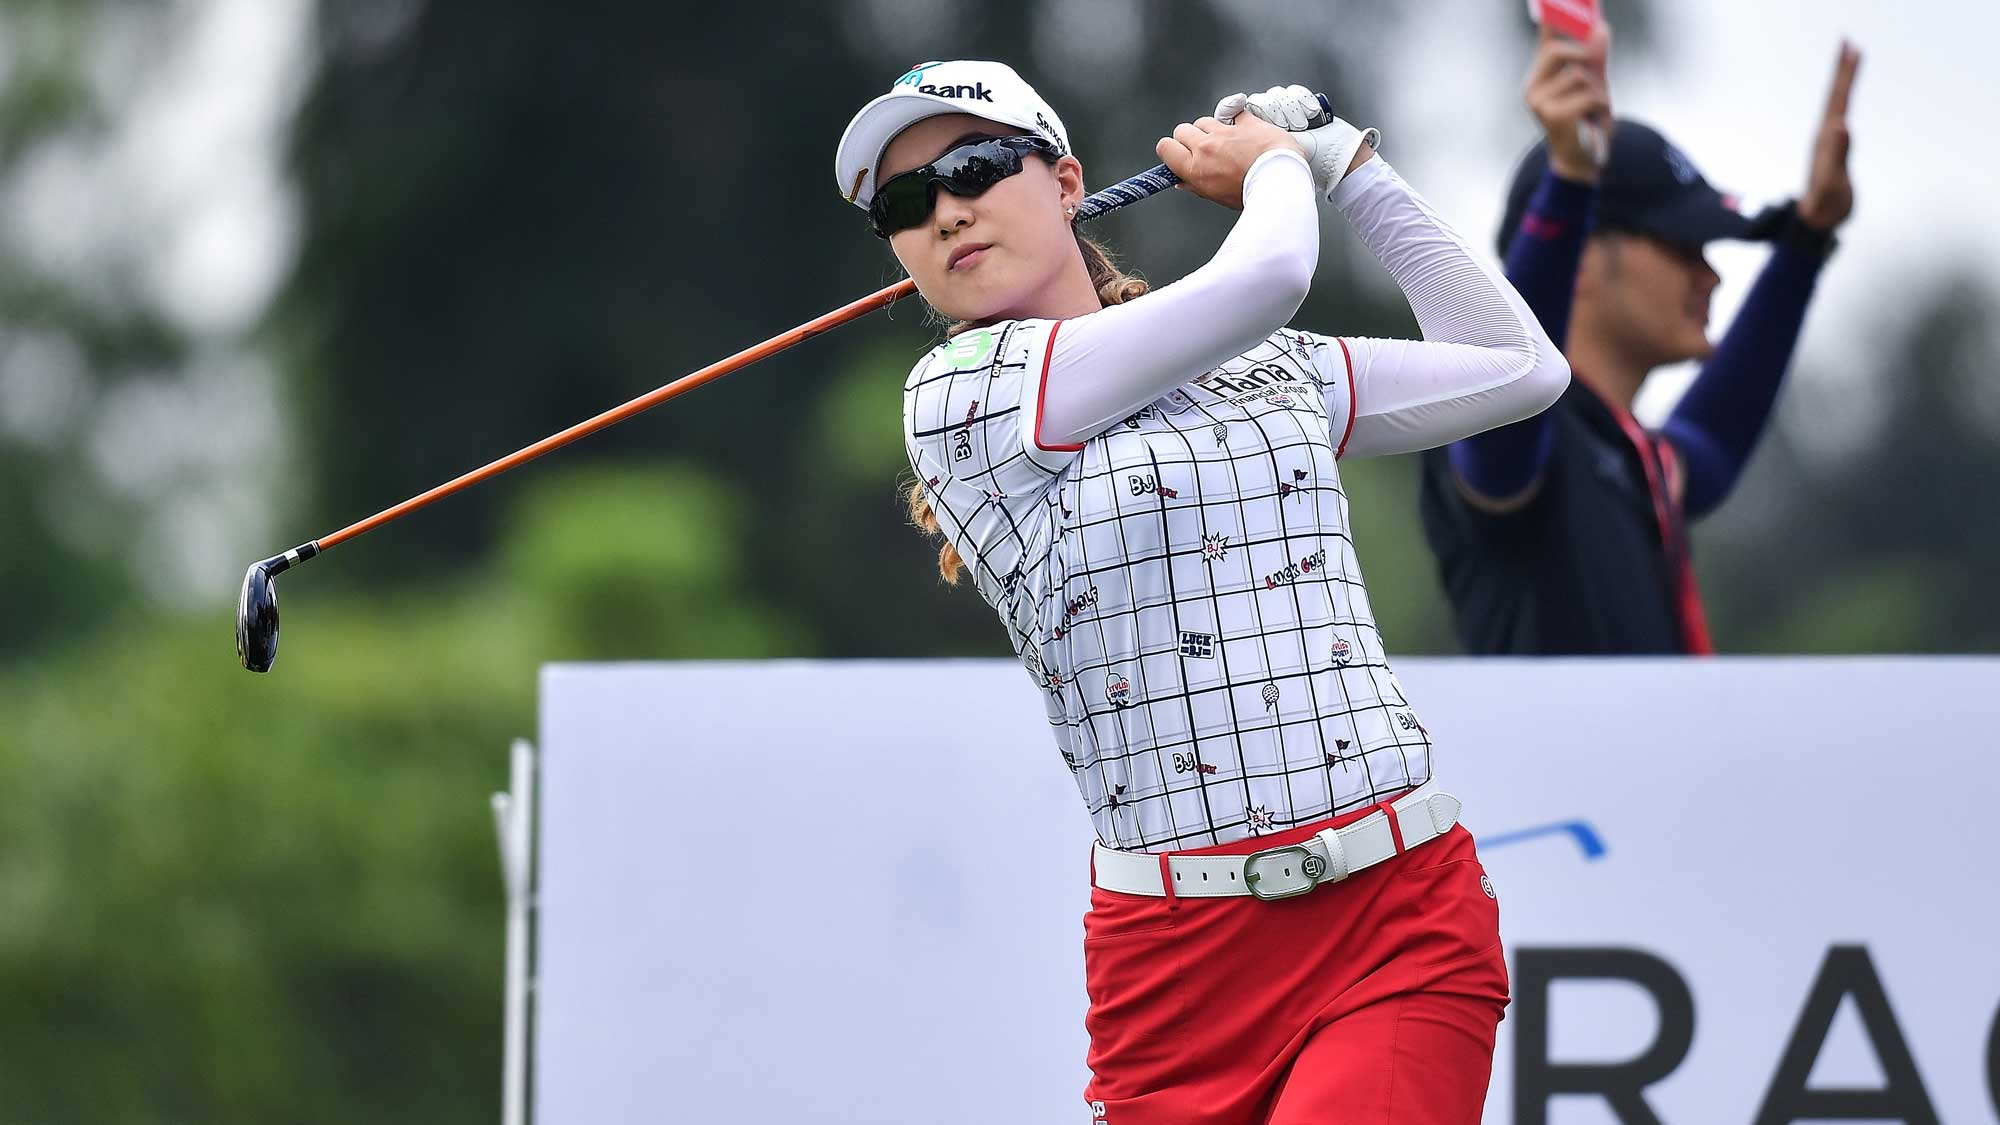 MInjee Lee on Day One of Honda LPGA Thailand